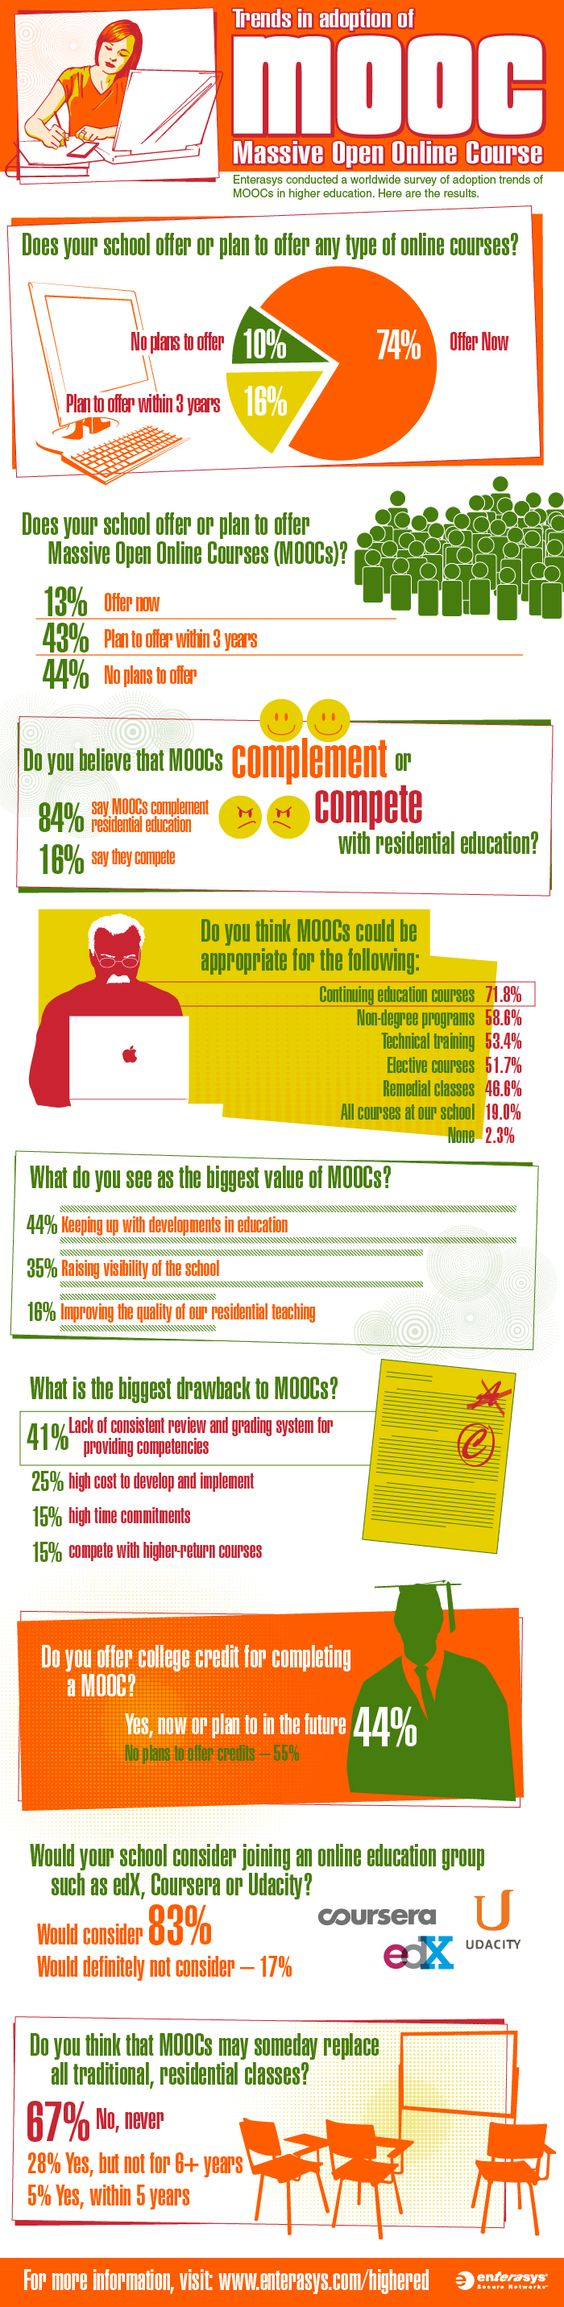 Will Moocs Disrupt Higher Education Or Level The Playing Field Infographic Mooc Moocs Massive Open Online Courses Educational Infographic